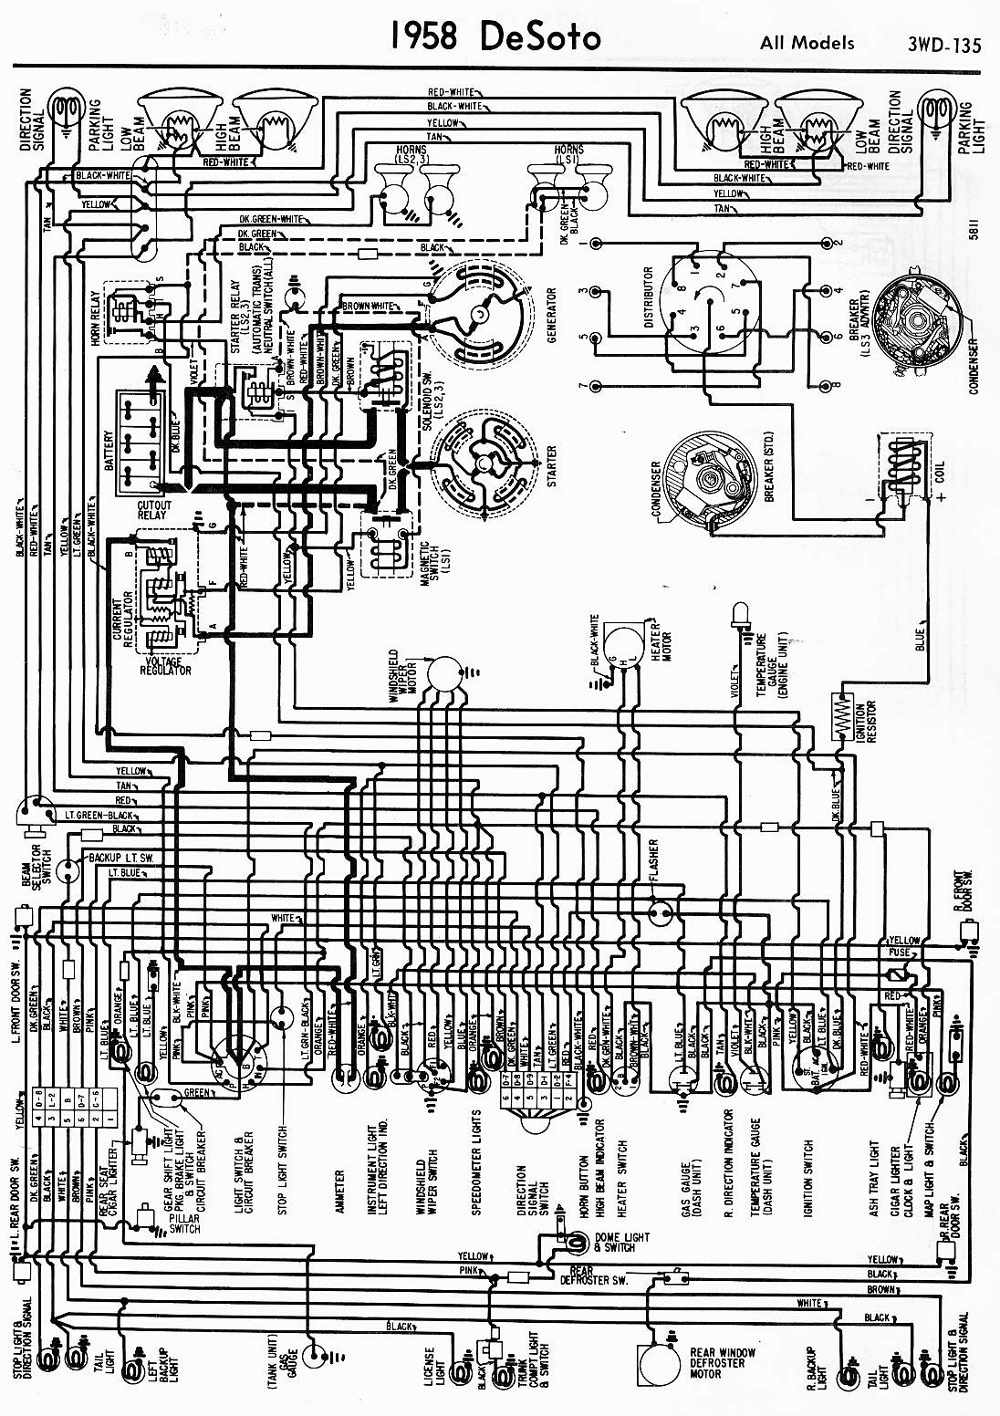 Fiat 450 Tractor Wiring Diagram Electrical 124 Transmission 1958 600 Engine Free Download Schematic 1960 Desoto